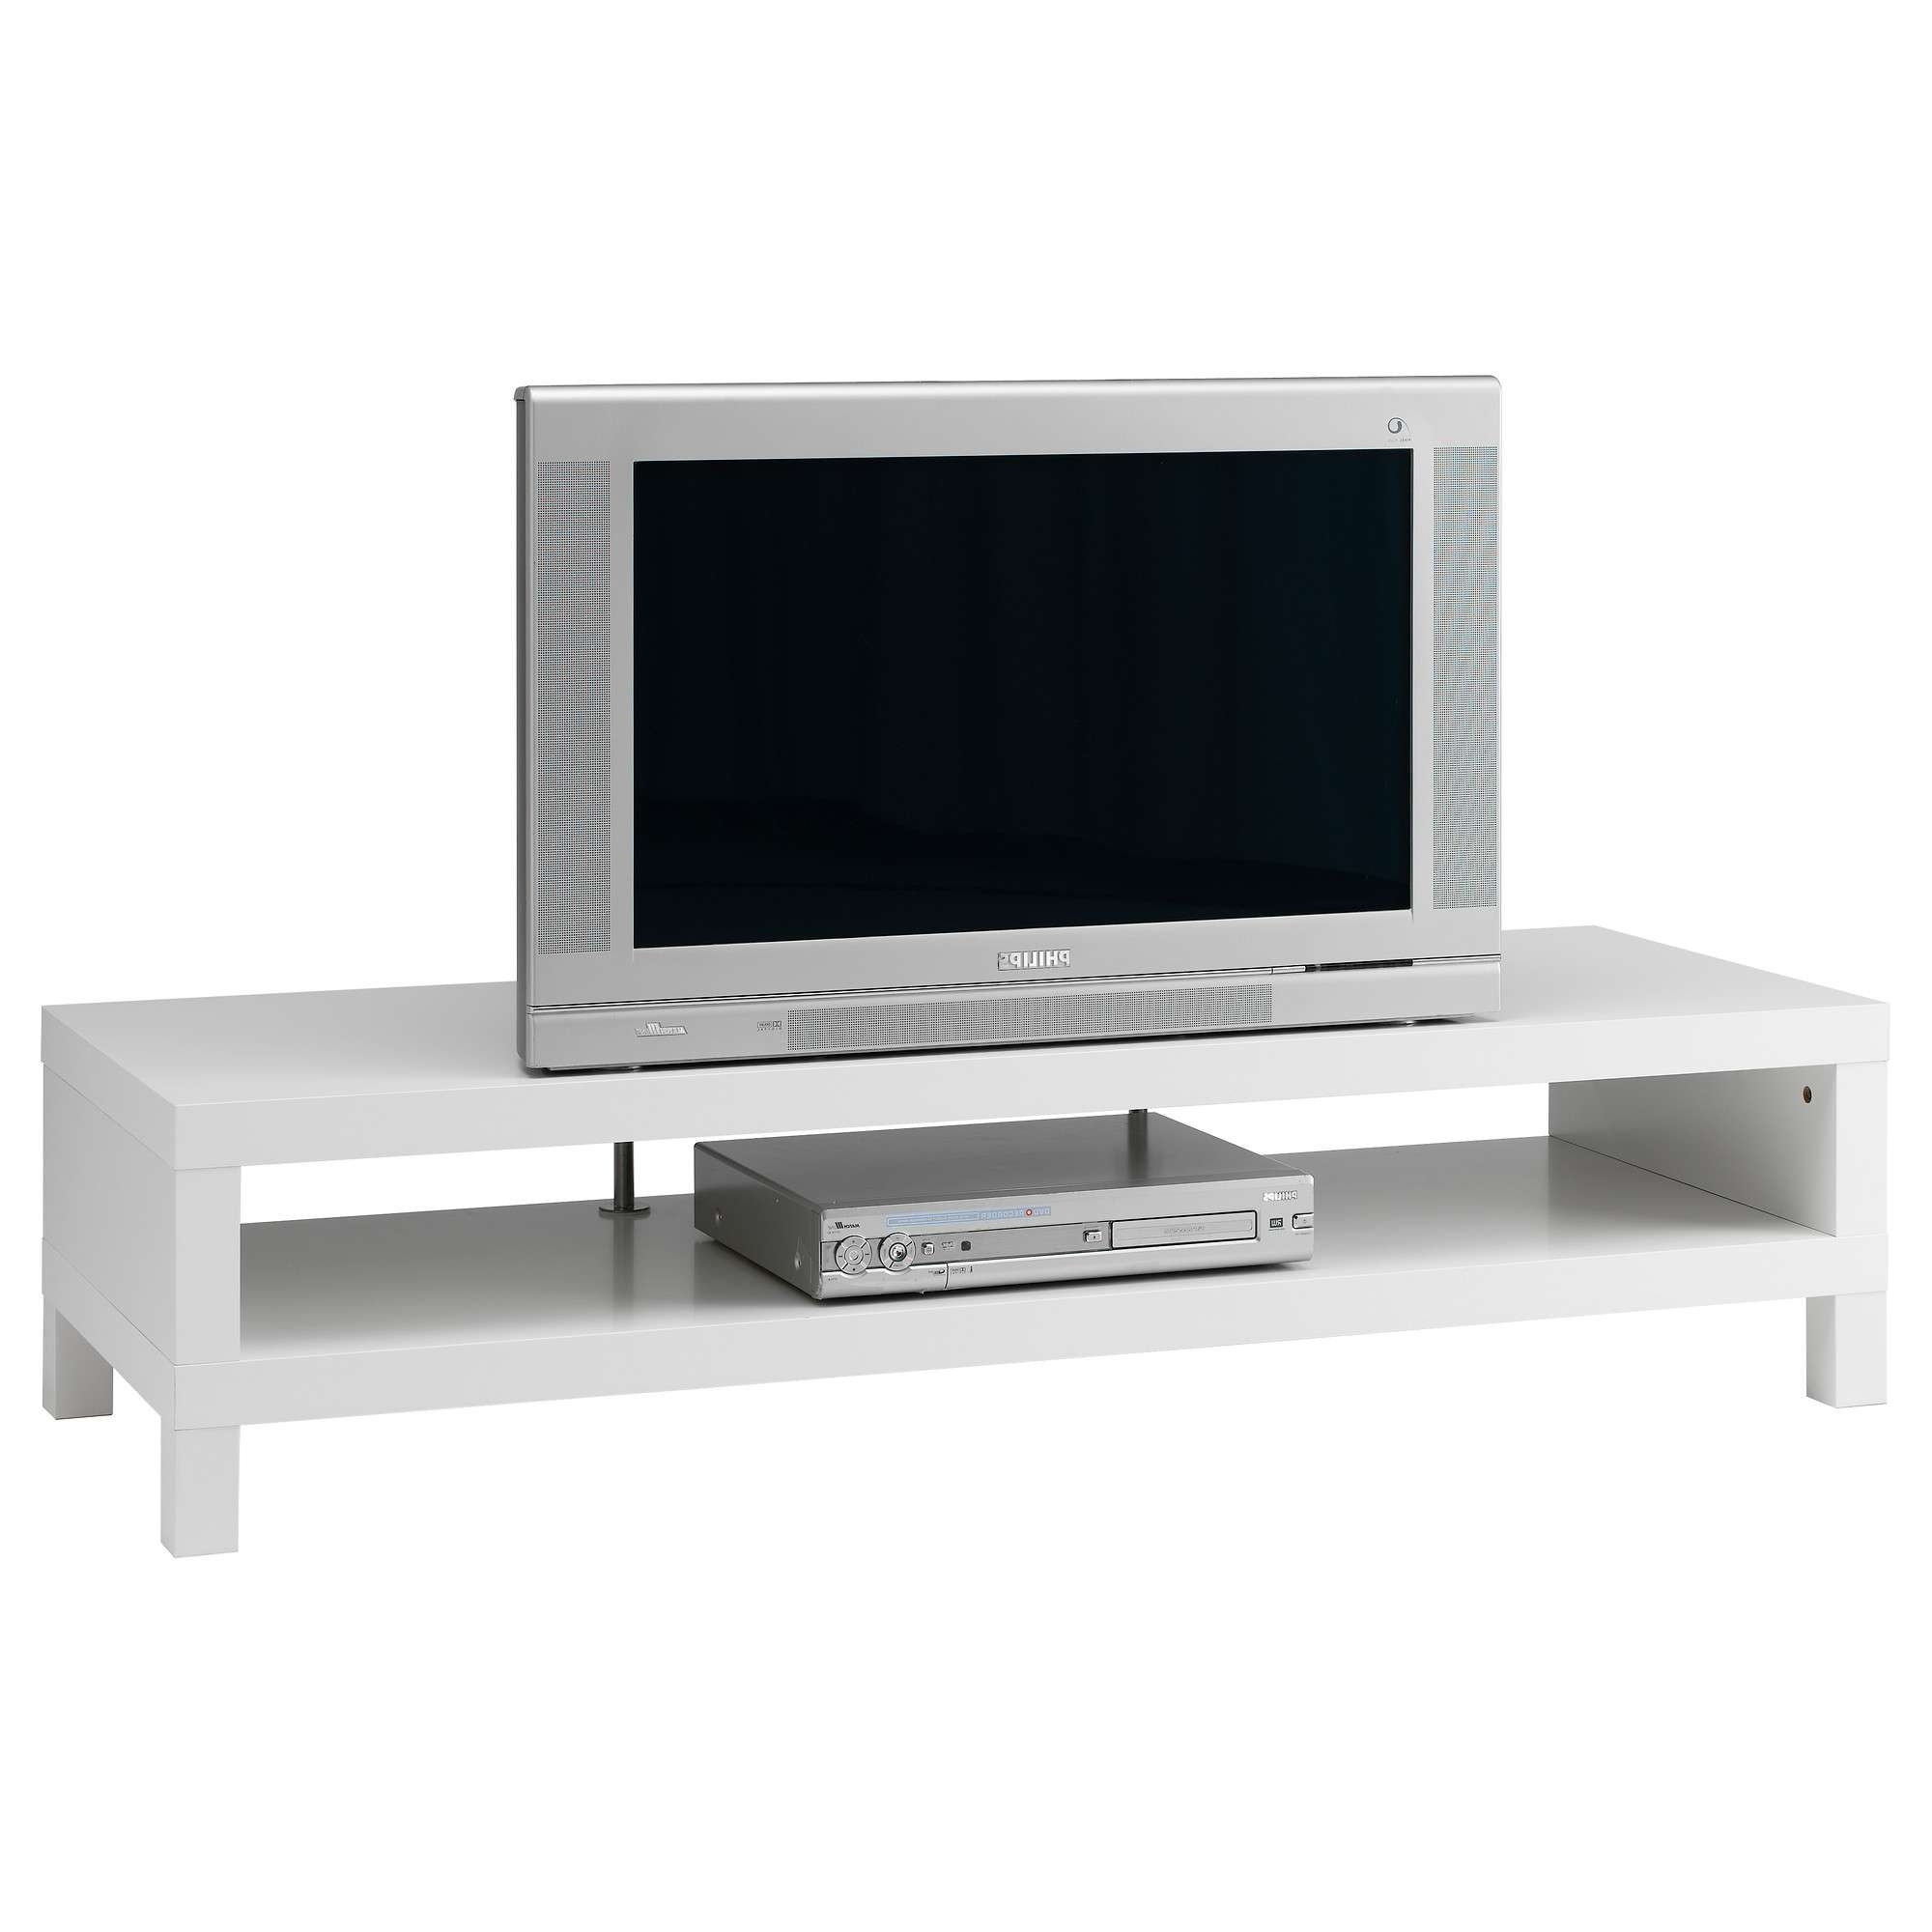 Ikea Tv Bench White Saigonmias Com